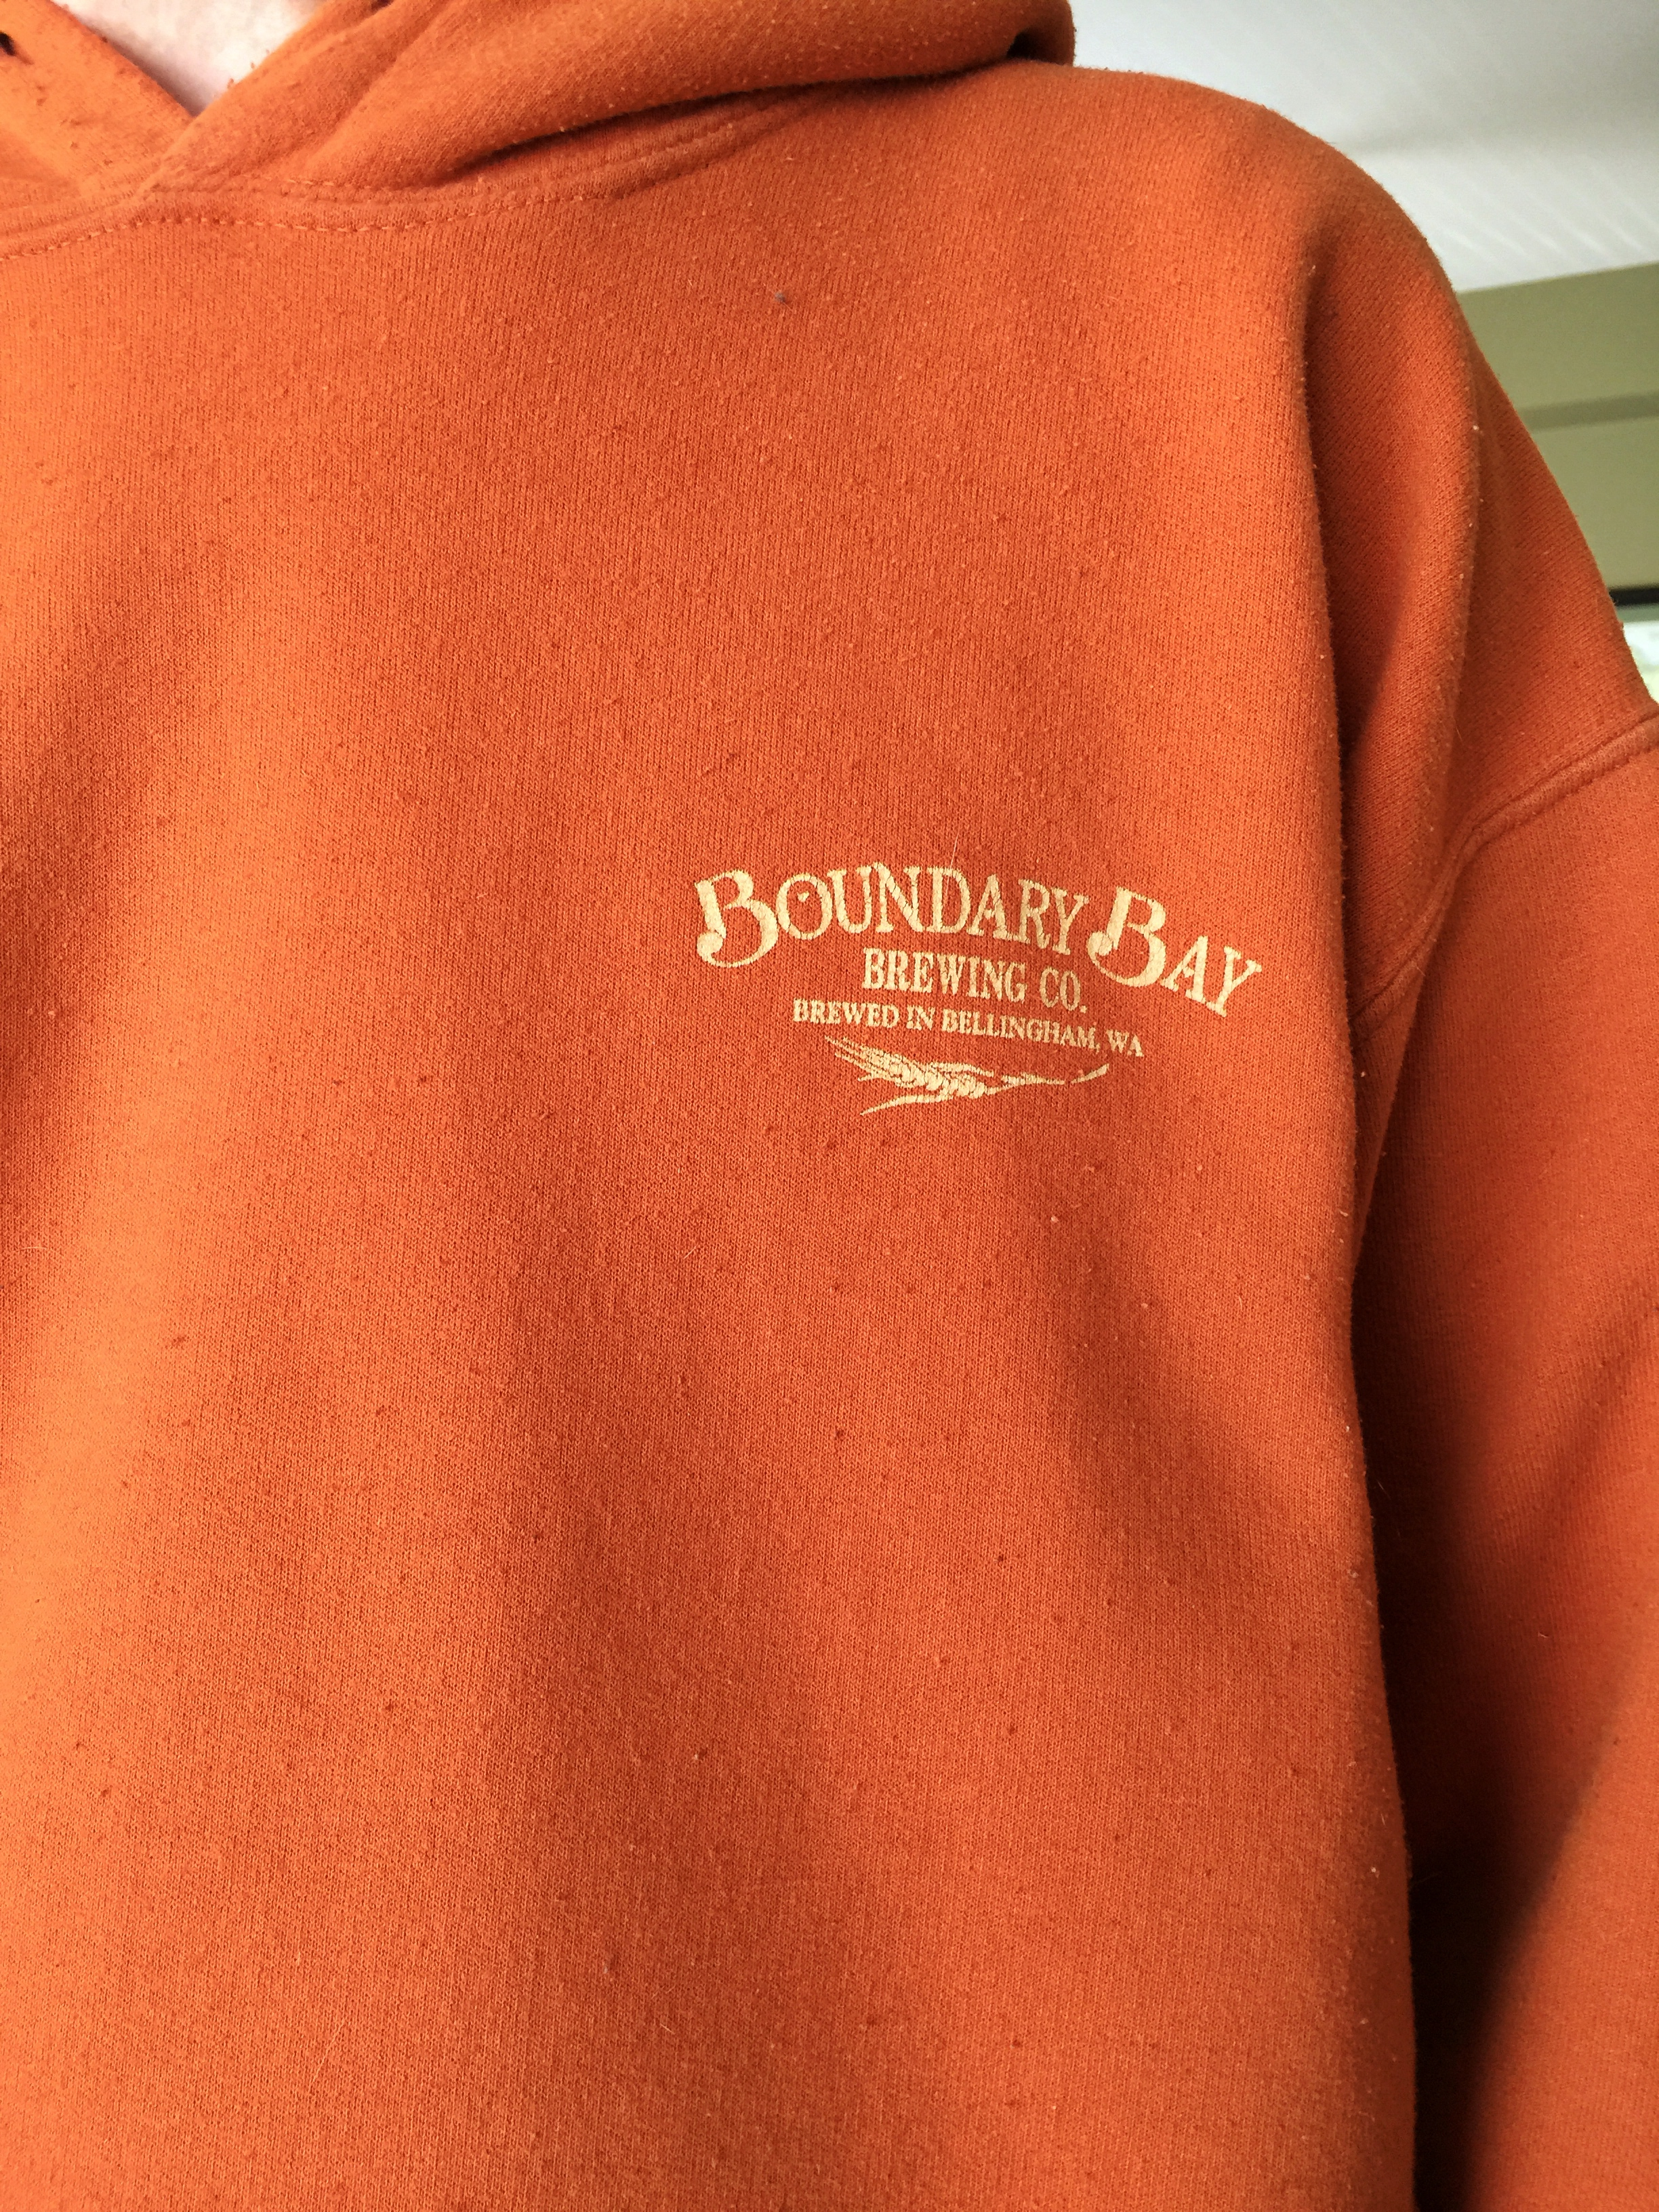 Boundary Bay sweatshirt Bellingham WA